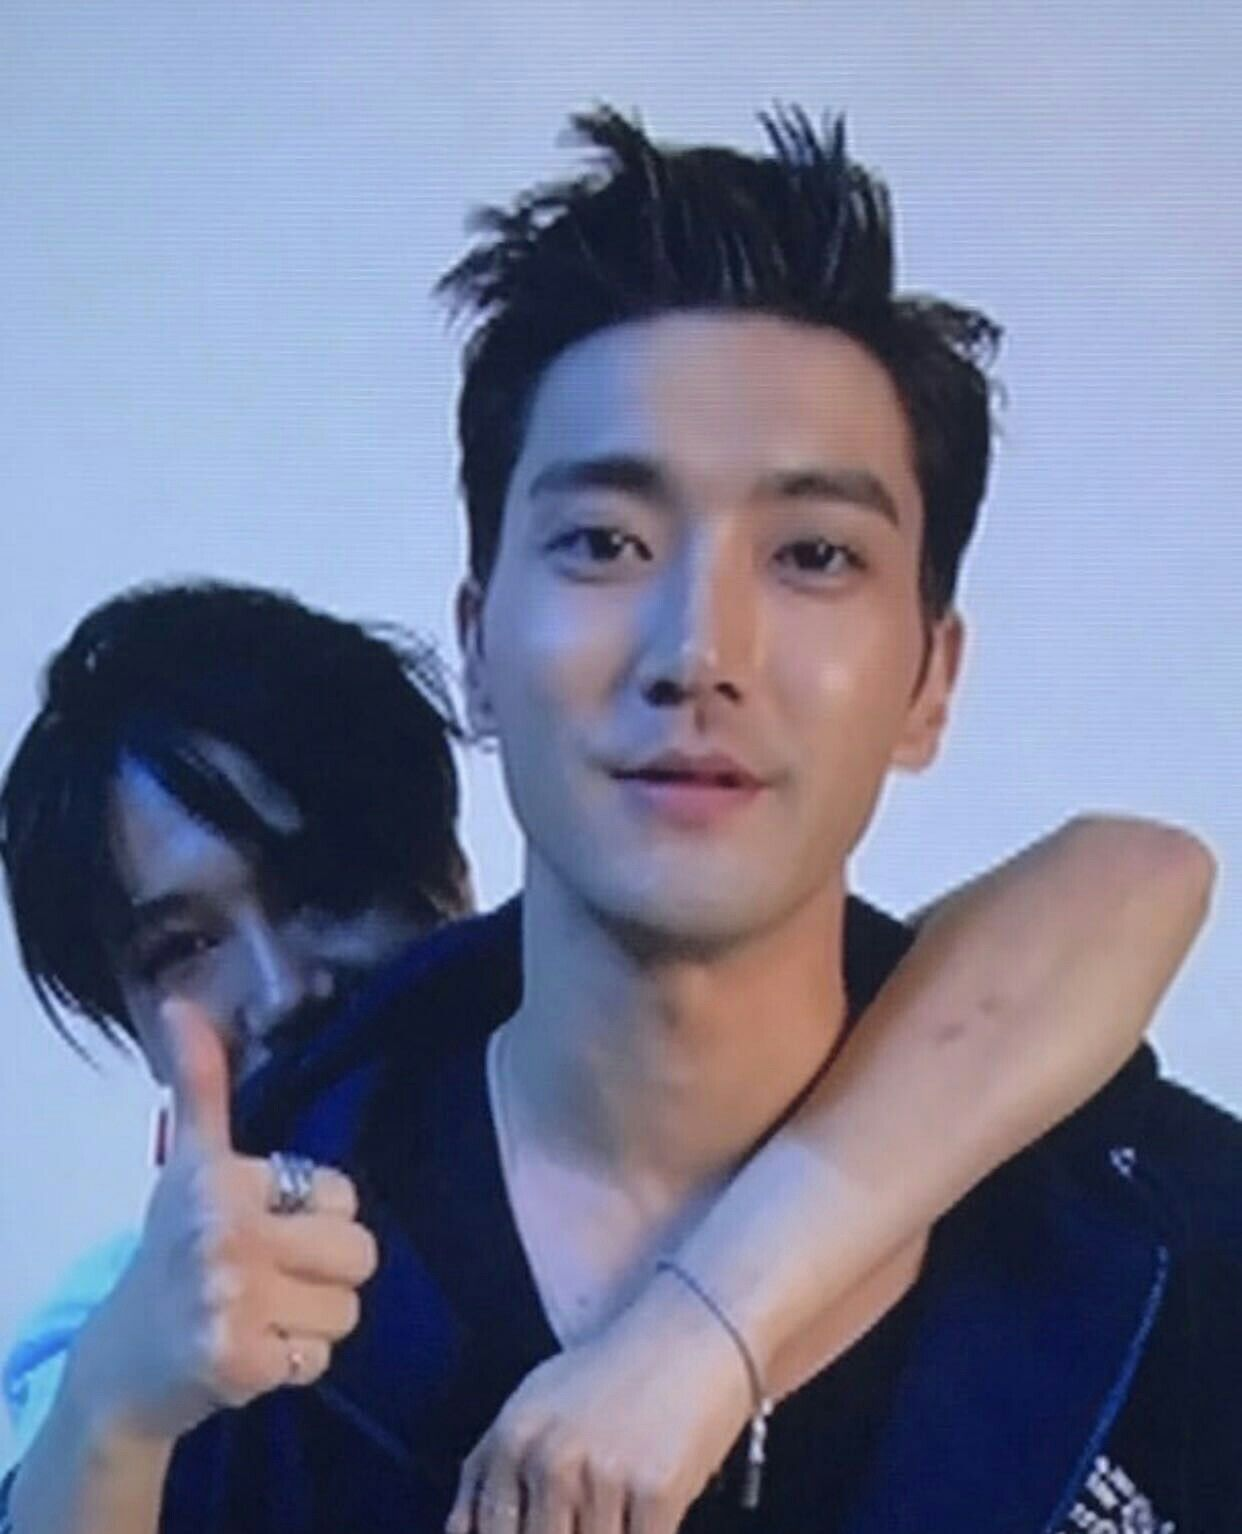 Yesung And Siwon Super Junior Super Junior 2017 Yesung Super Junior Super Junior